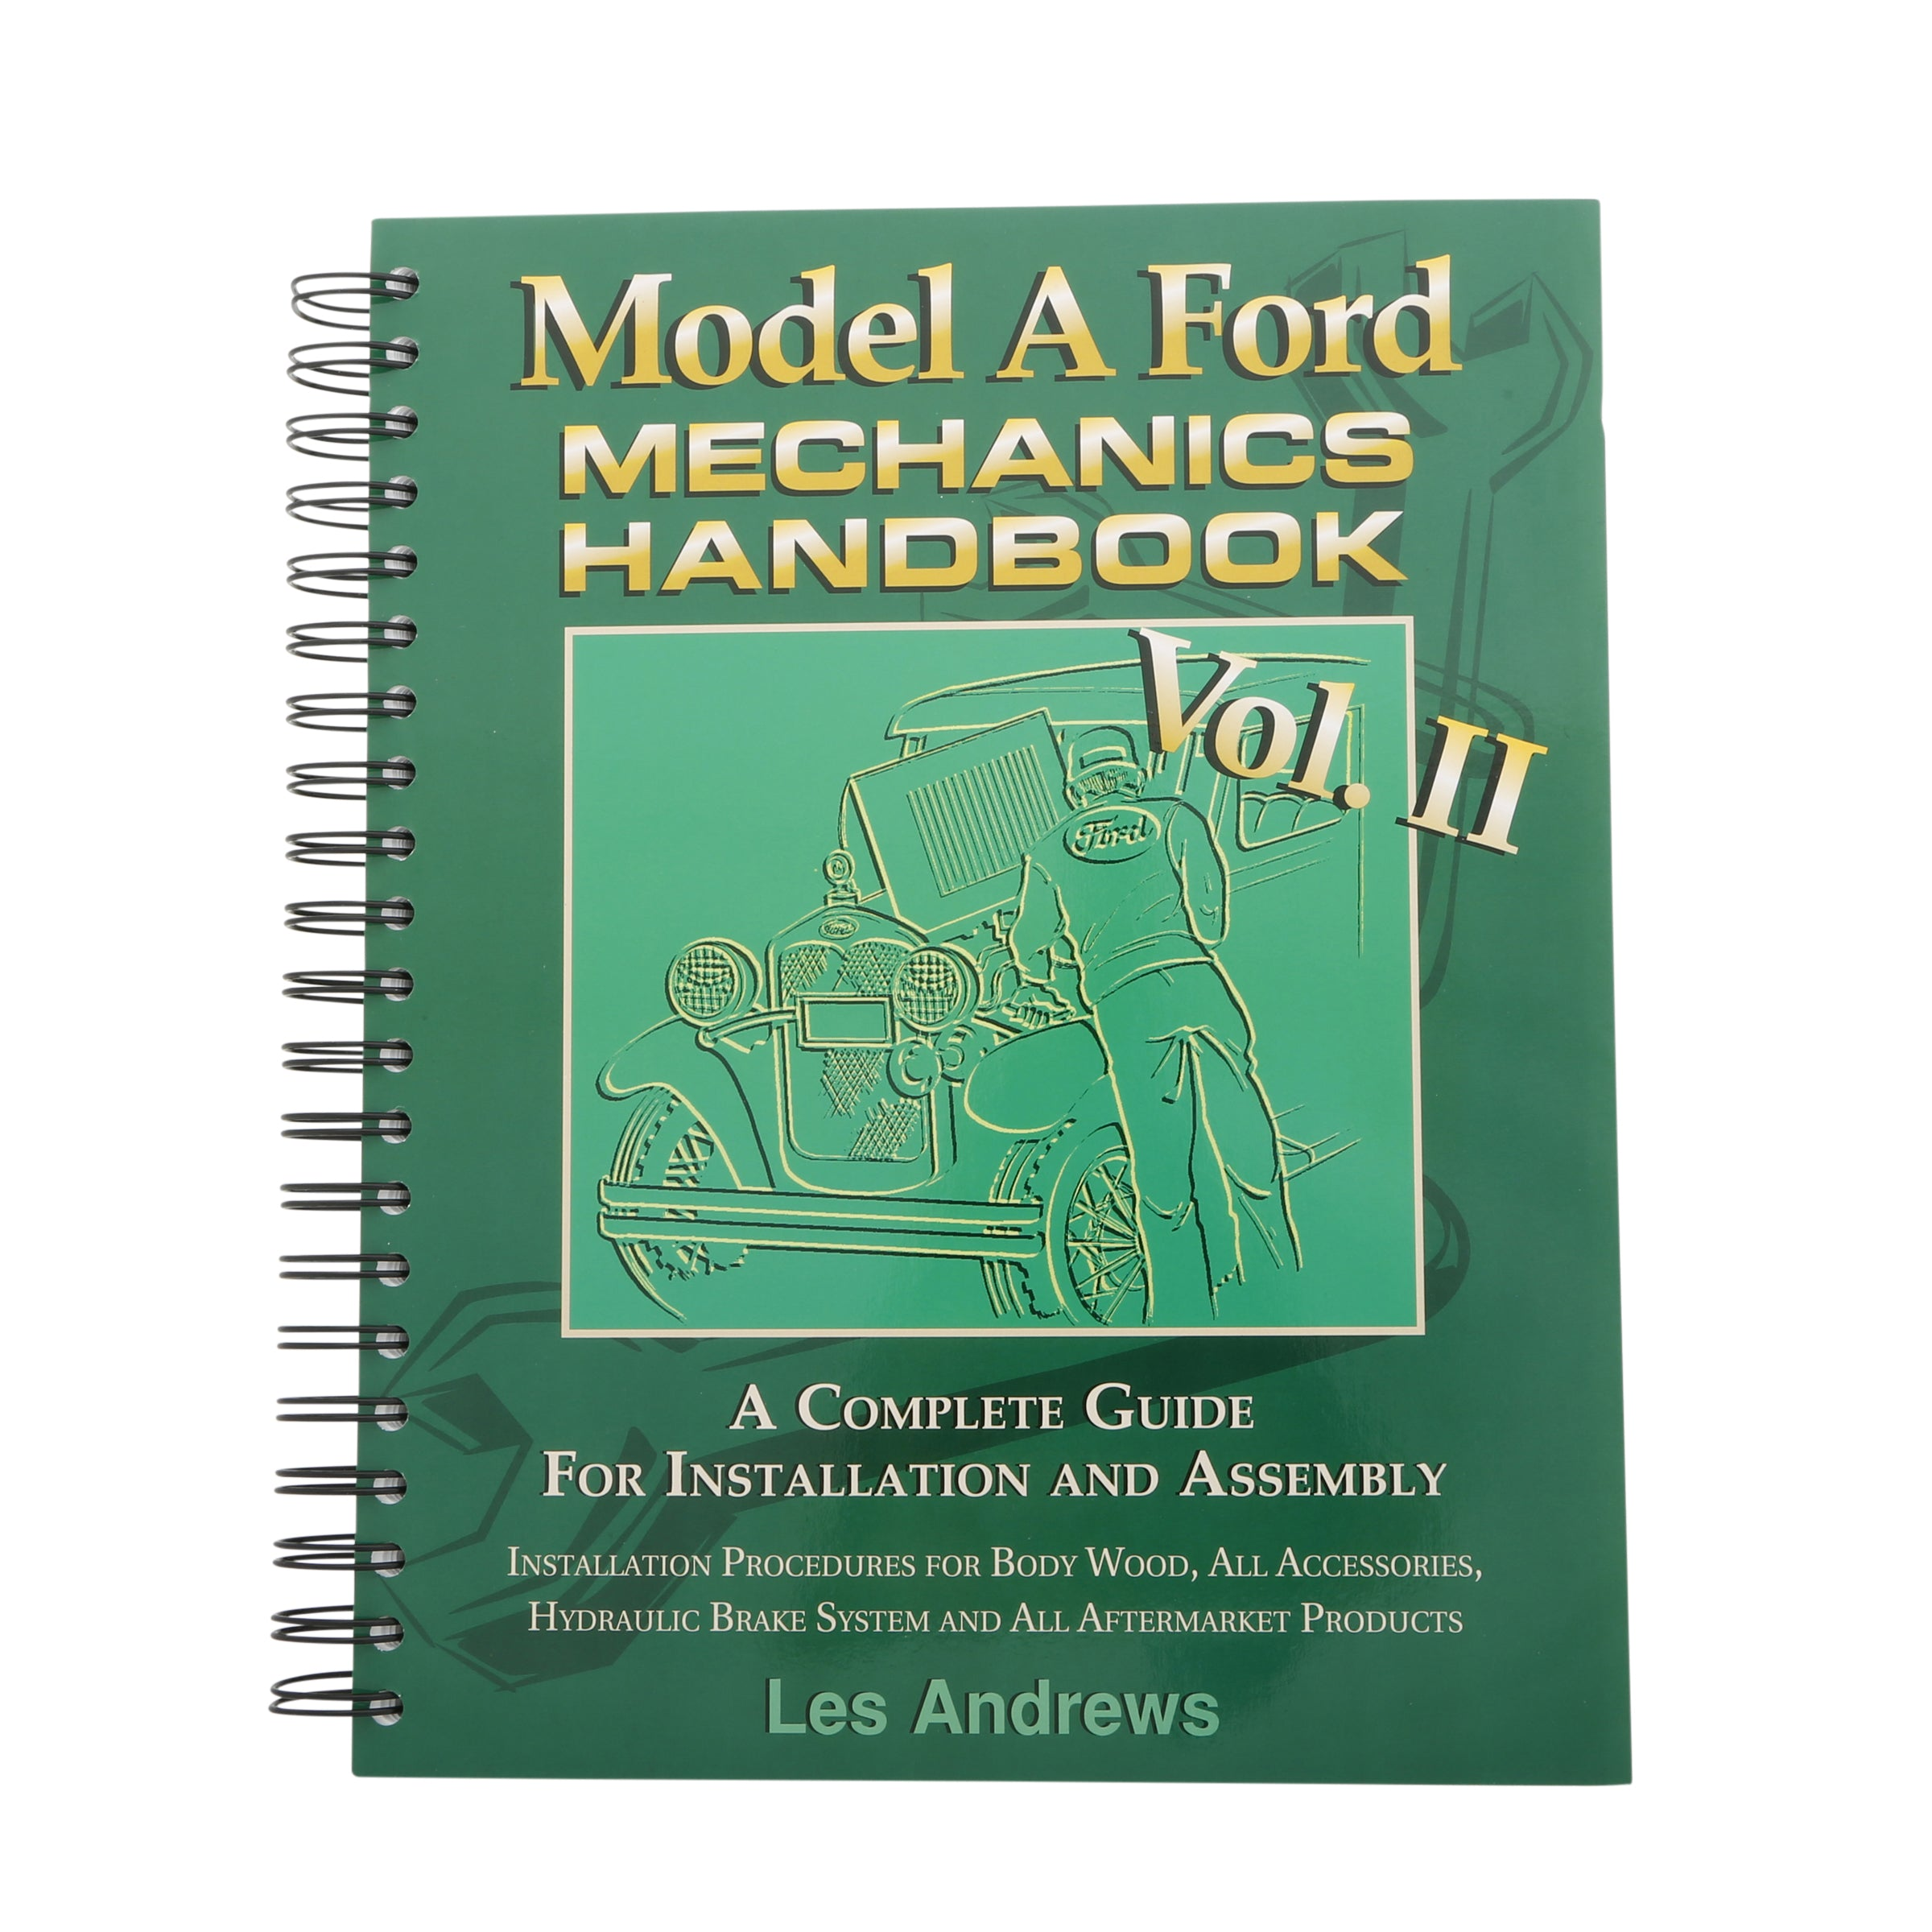 Model A Ford Mechanics Handbook • Volume II